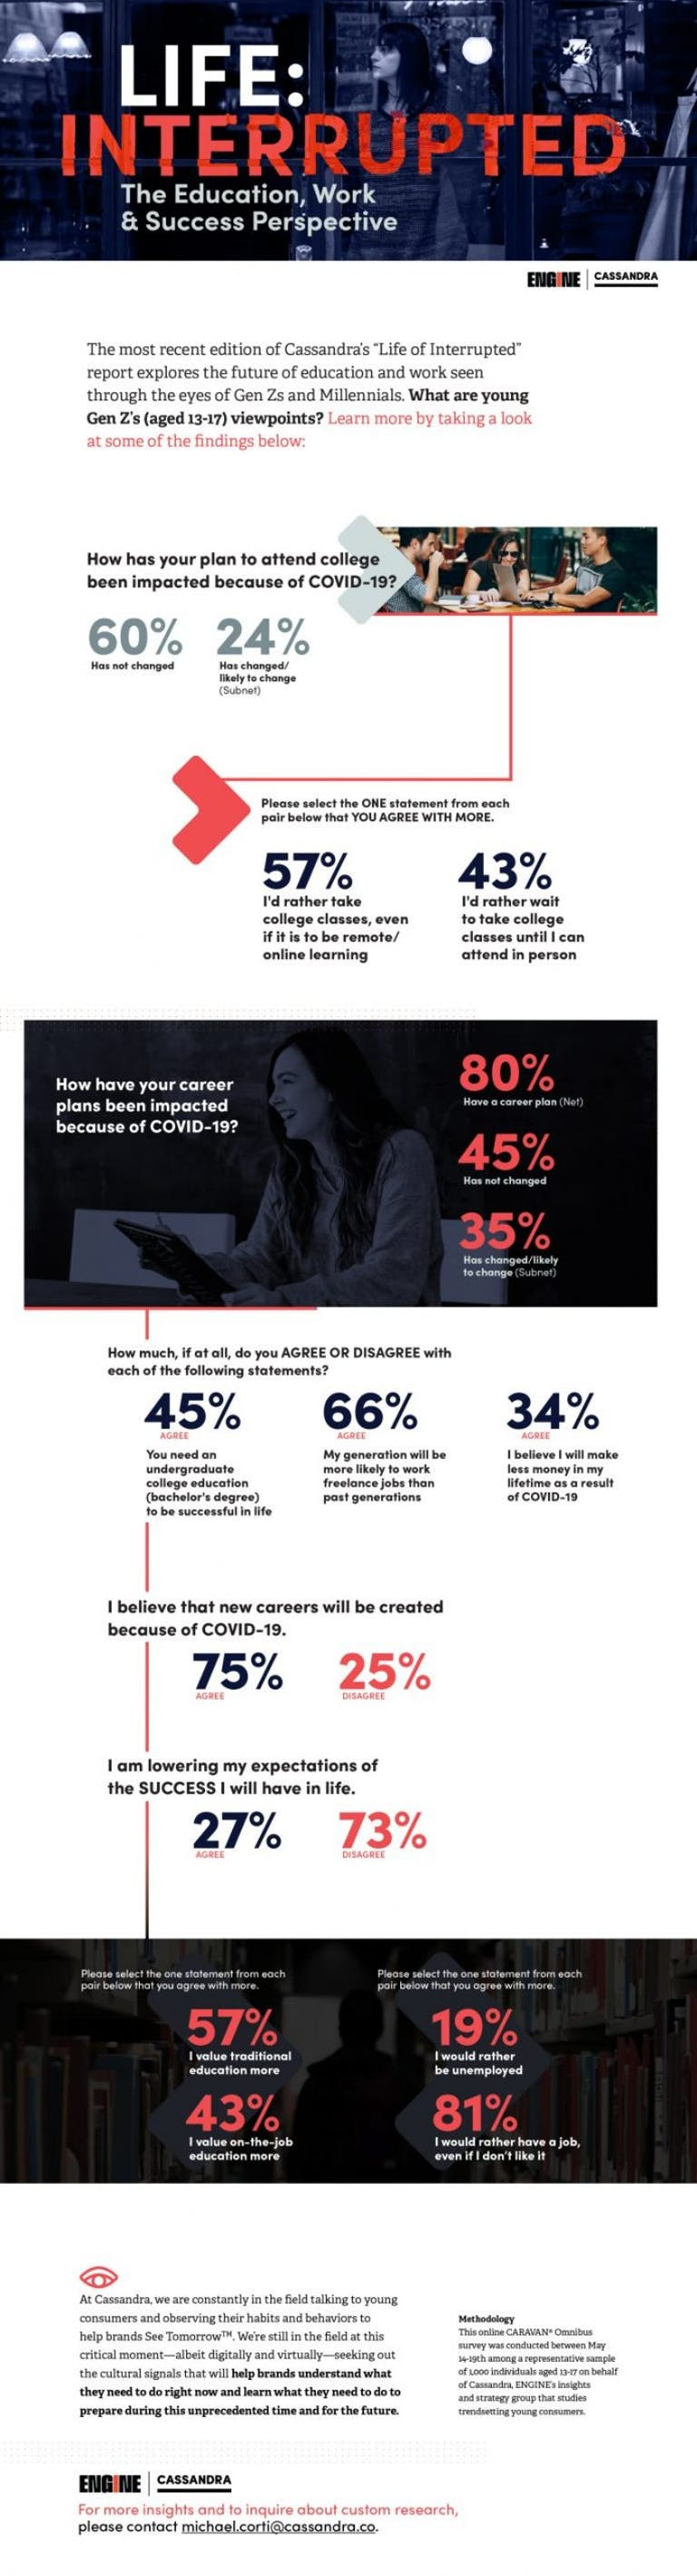 Life Interrupted: The education, work and success perspective infographic